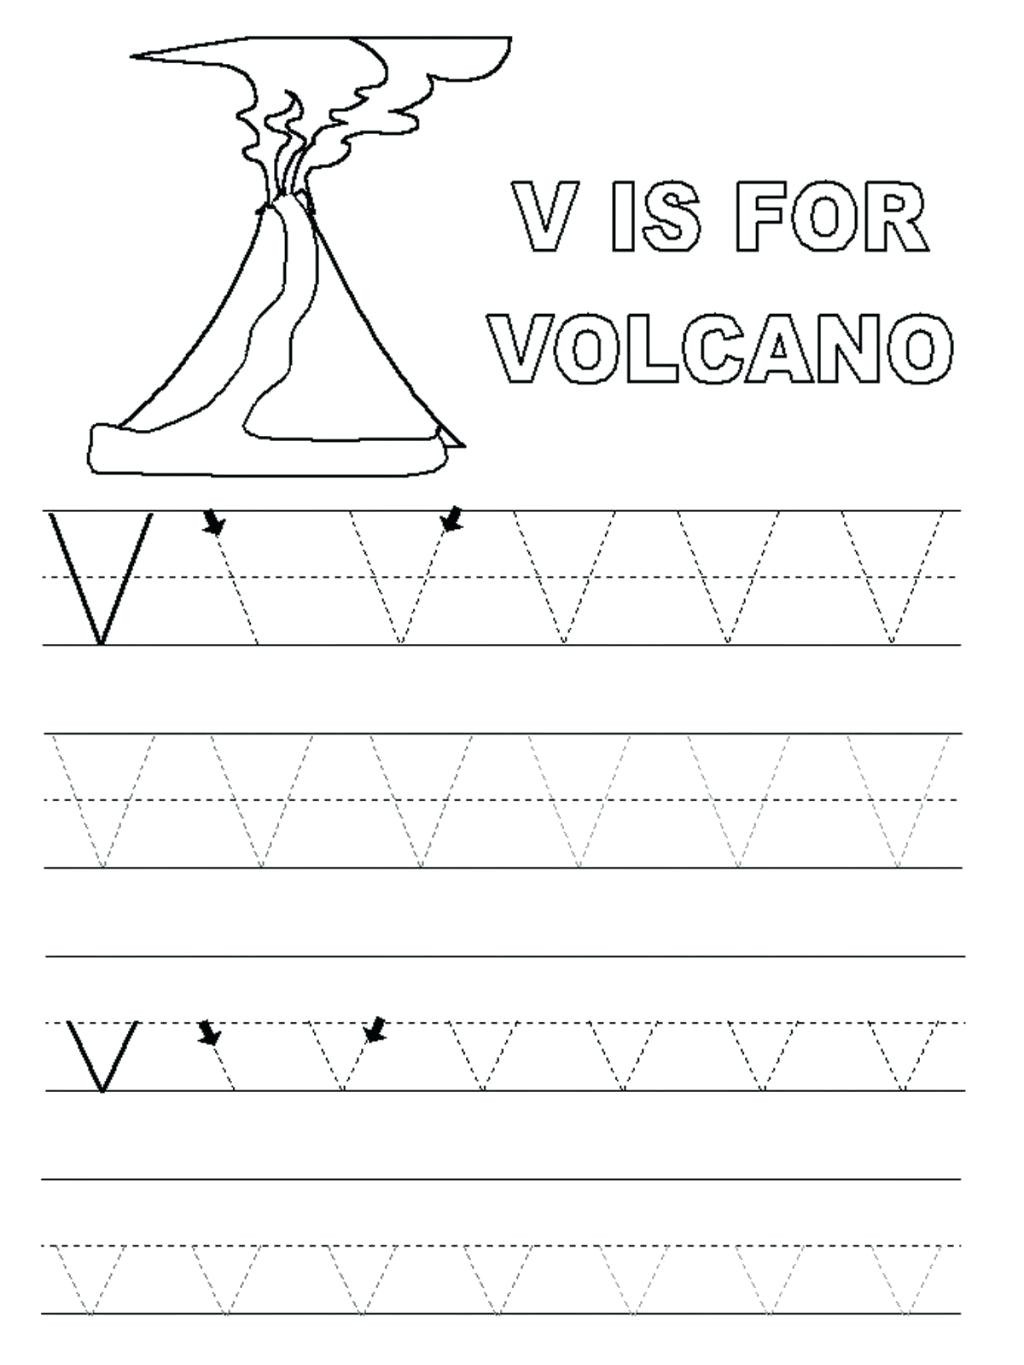 Volcano Worksheets for Kindergarten Preschool Volcano Worksheets Clover Hatunisi